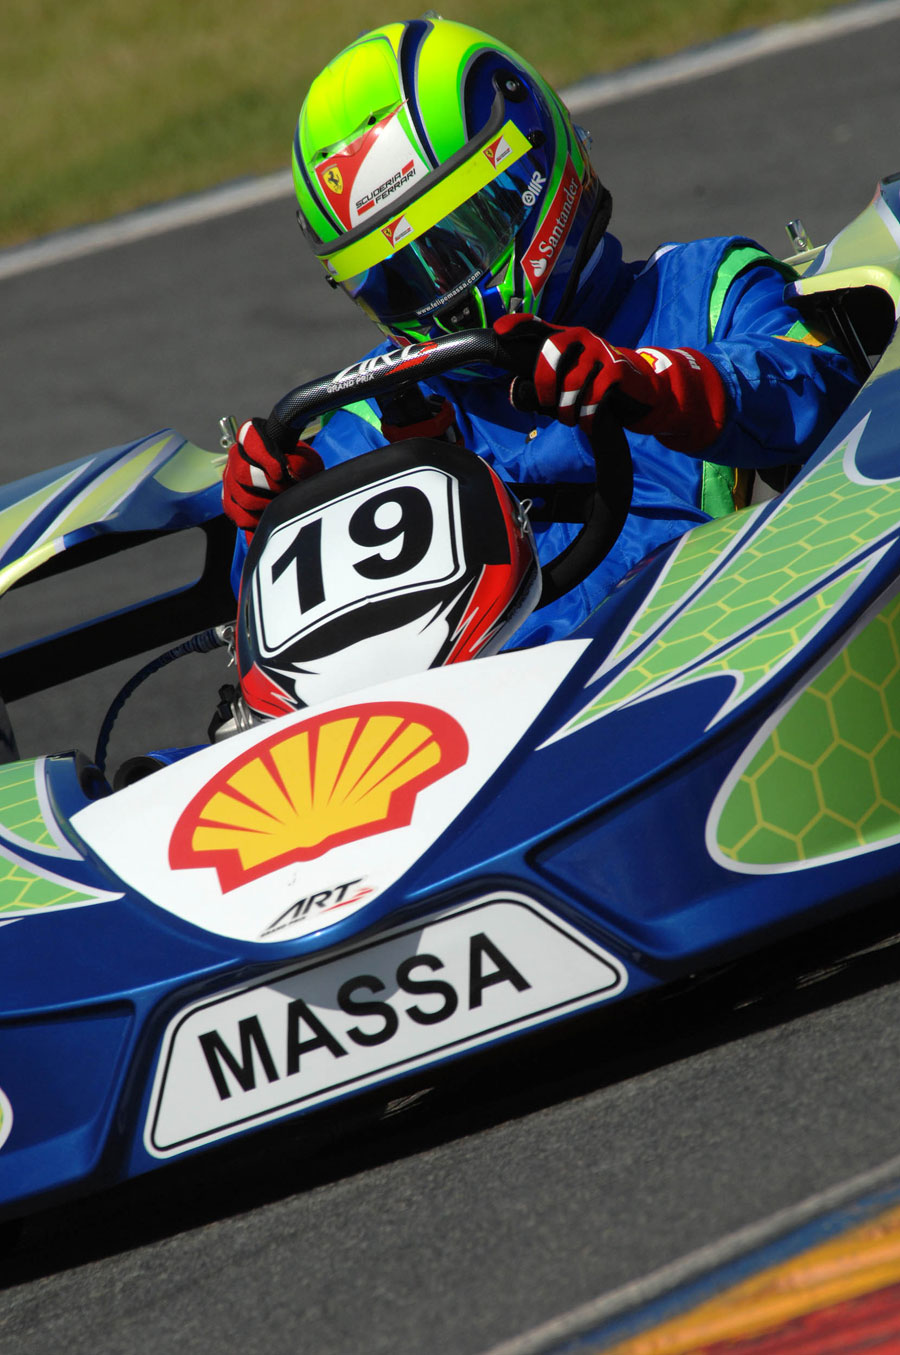 Felipe Massa during his karting challenge